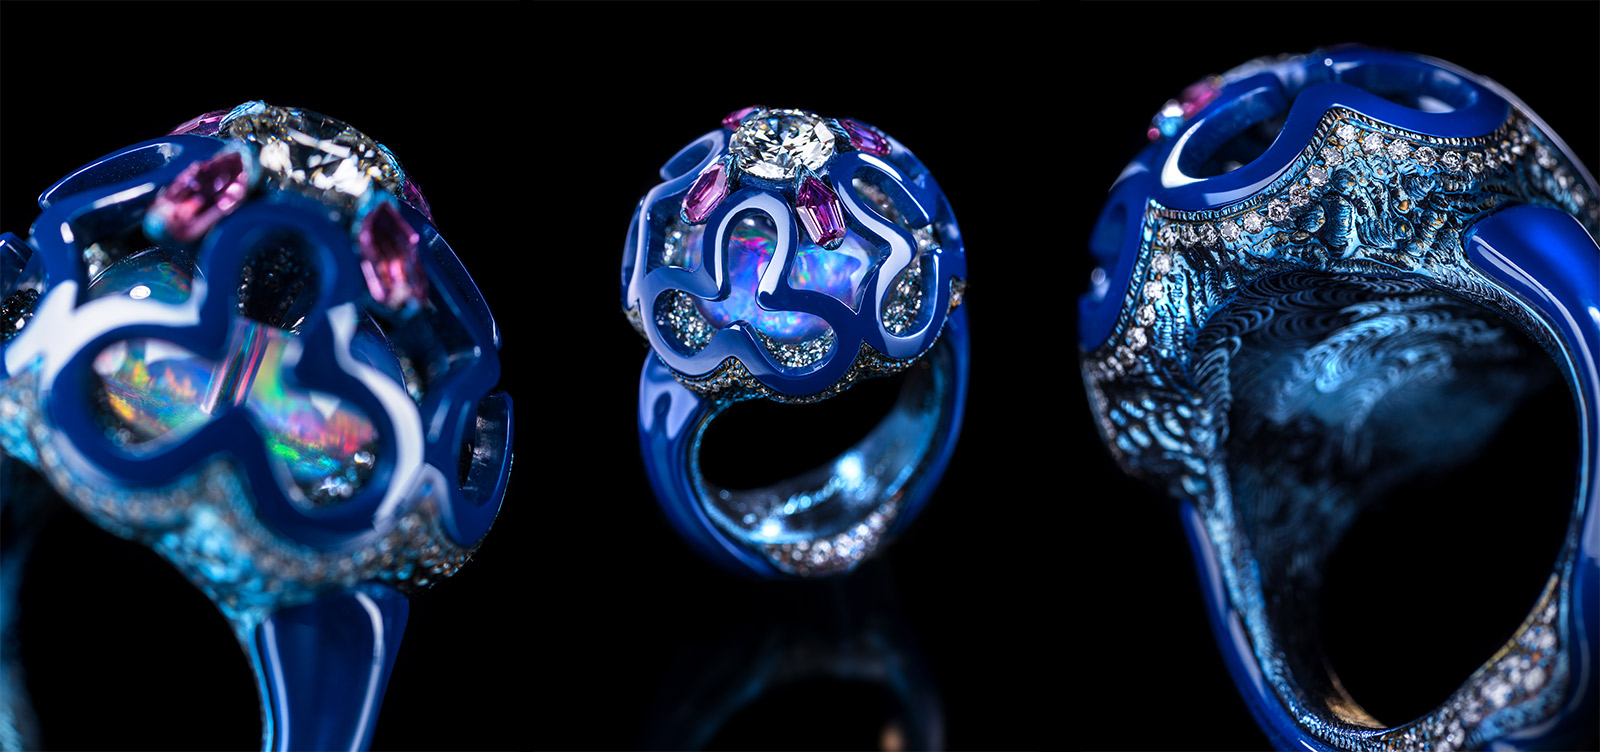 Wallace Chan 'Dream Planet' ring with diamond, crystal, lapis lazuli, opal and pink sapphire in titanium and Wallace Chan Porcelain